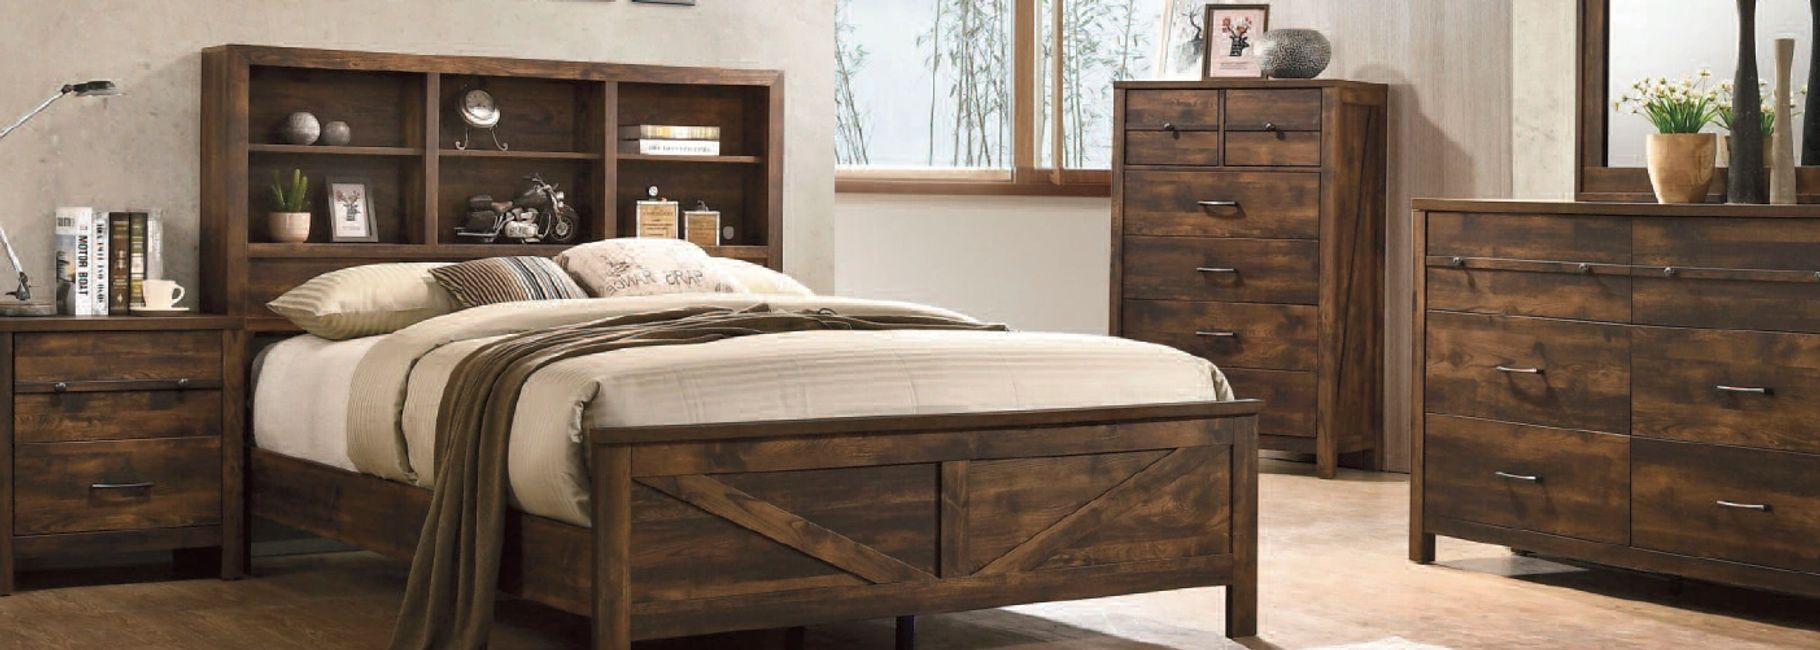 Bedroom rustic bookcase set